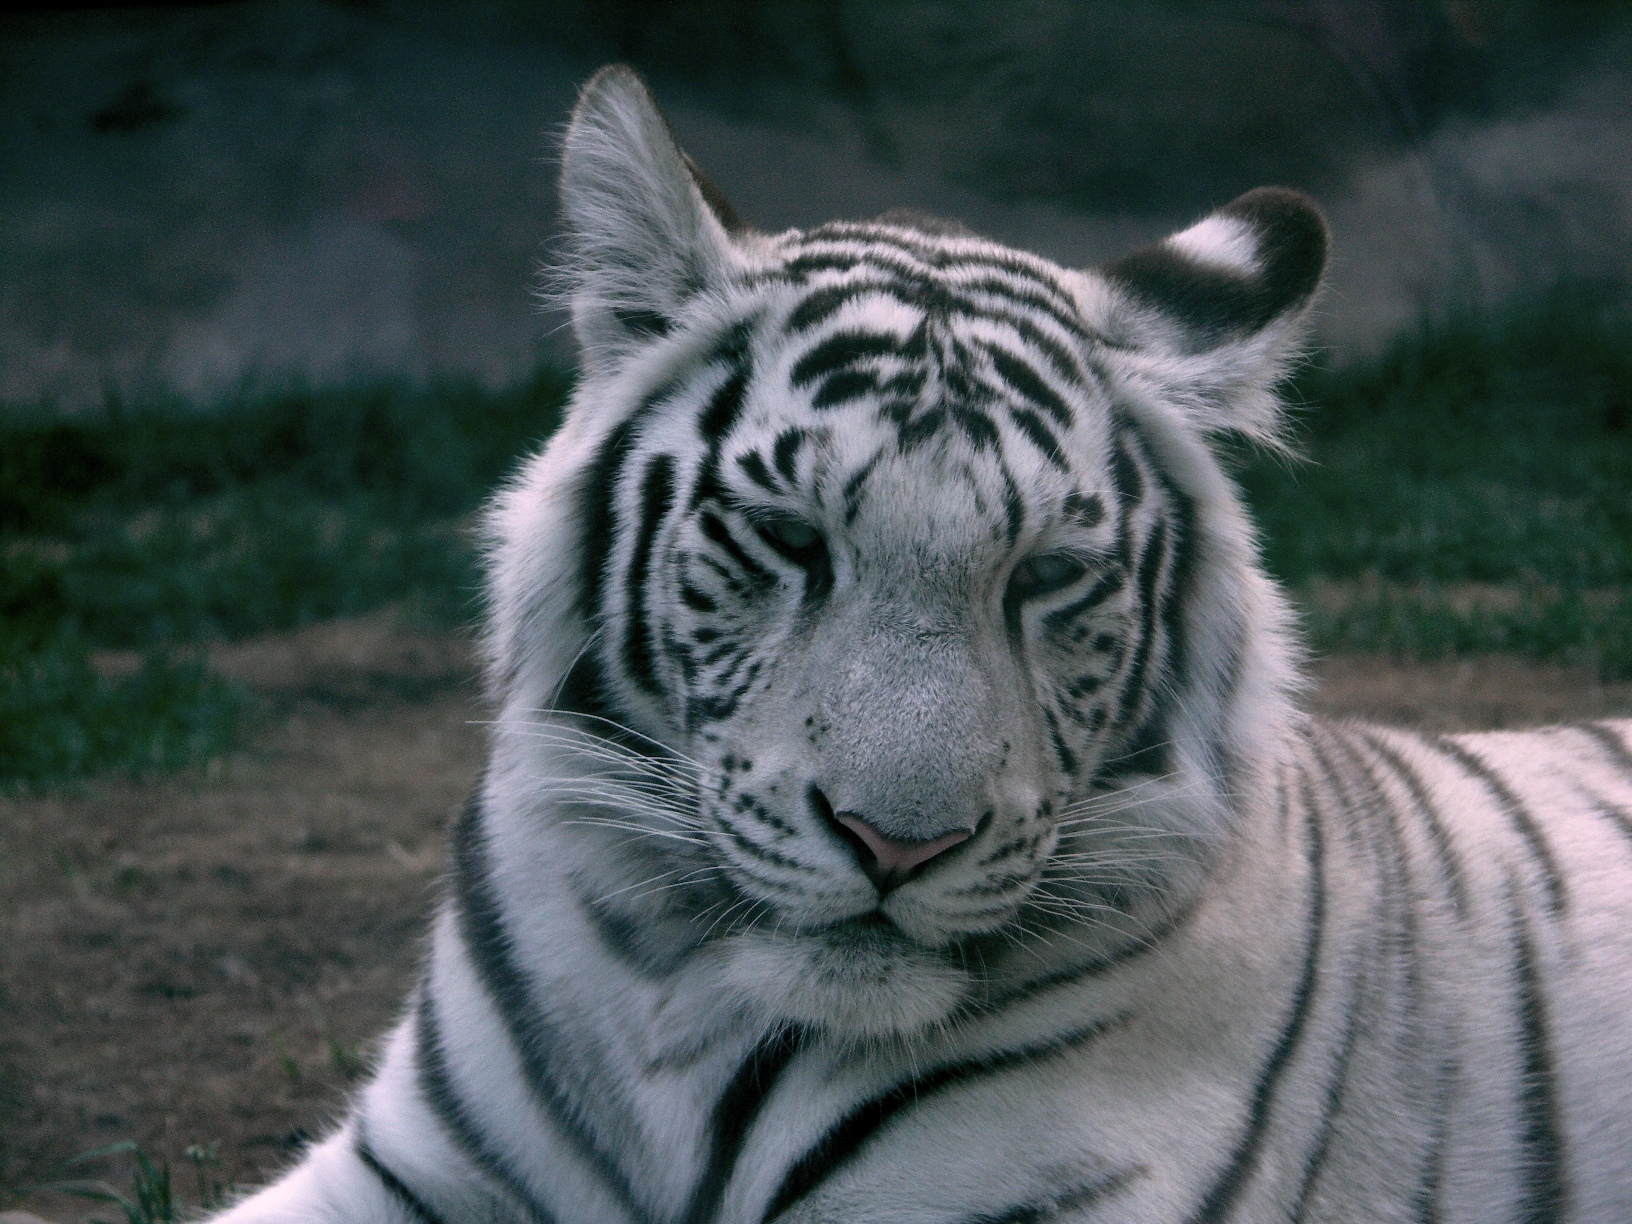 http://upload.wikimedia.org/wikipedia/commons/2/24/White_tiger.JPG